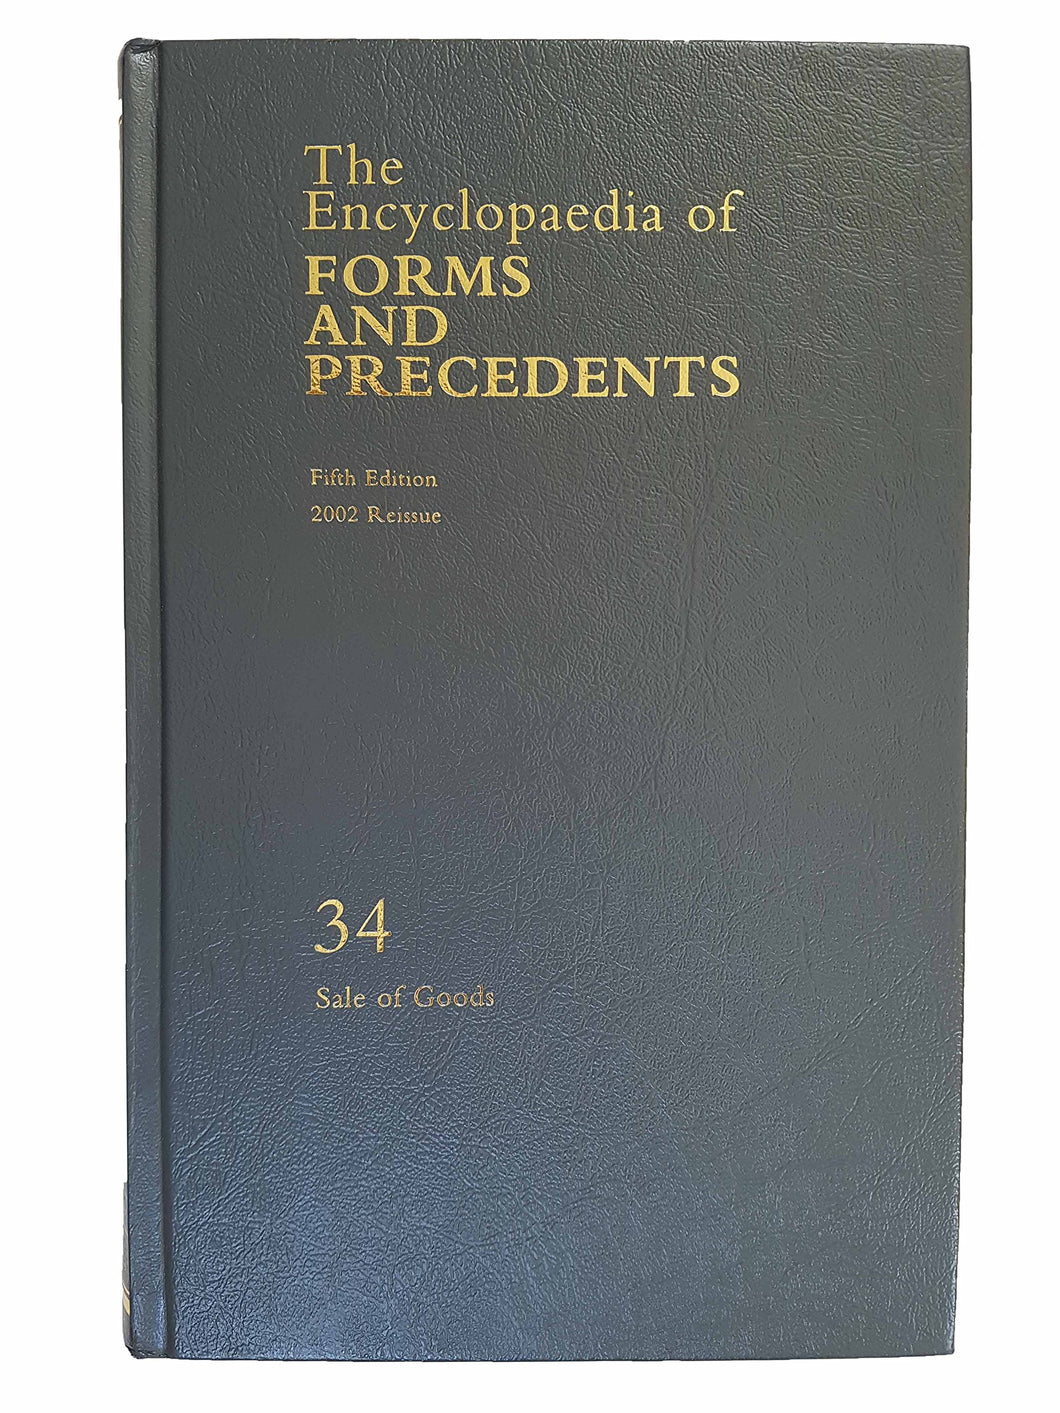 The Encyclopaedia of Forms and Precedents, Fifth Edition, 2002 Reissue: Vol 34 - Sale of Goods